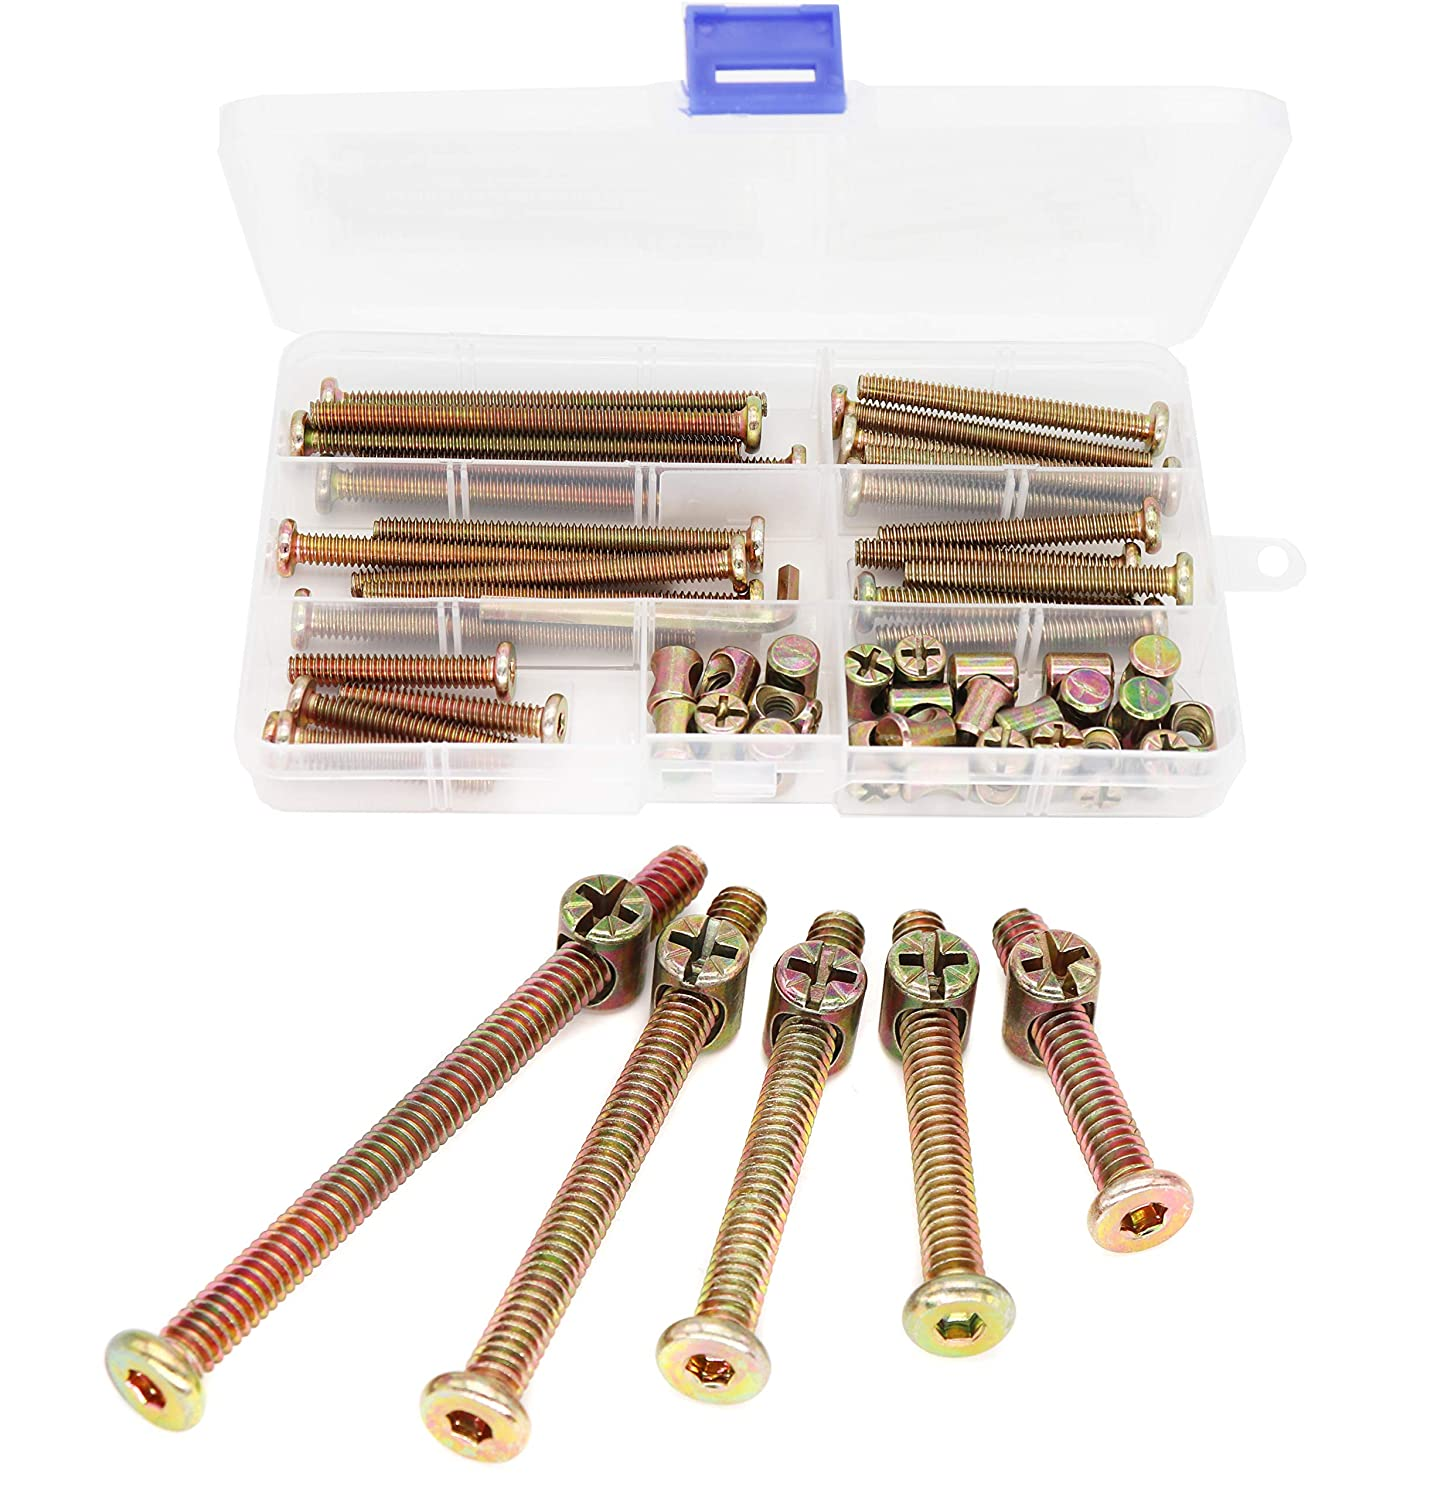 """binifiMux 50pcs 1/4-20"""" Baby Bed Hardware Replacement Kit, Zinc Plated Hex Socket Cap Drive Screws Barrel Nuts Assortment Kit for Cot Chairs Furniture"""